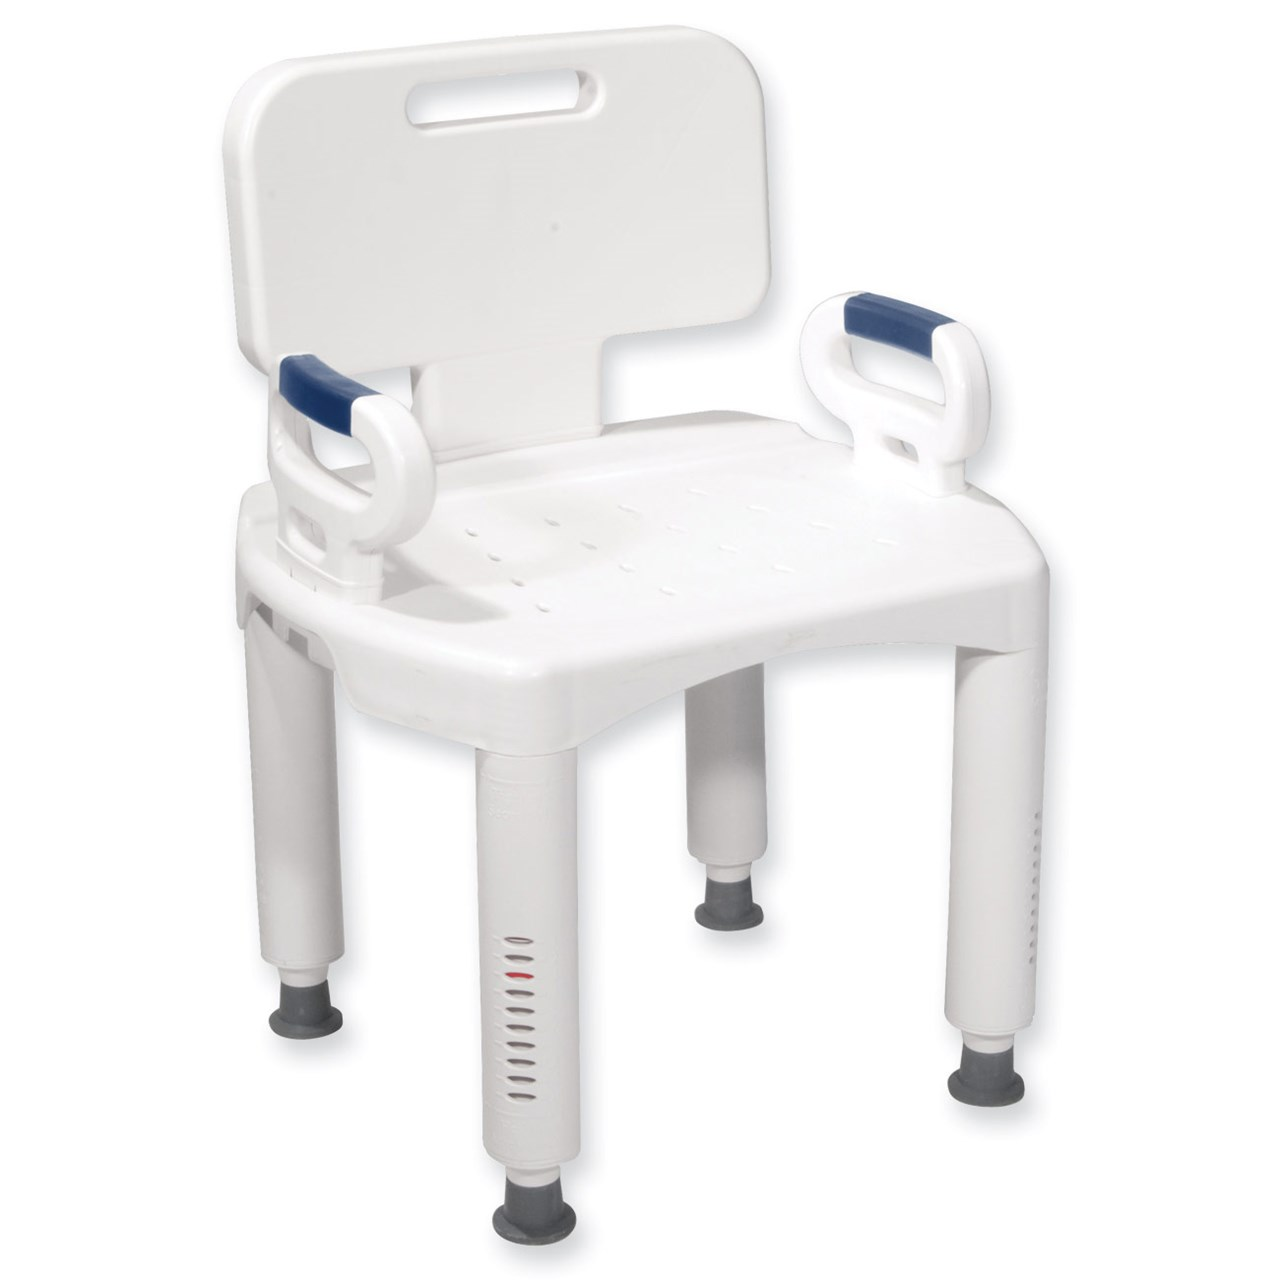 Maxiaids Bath Bench With Back And Arms